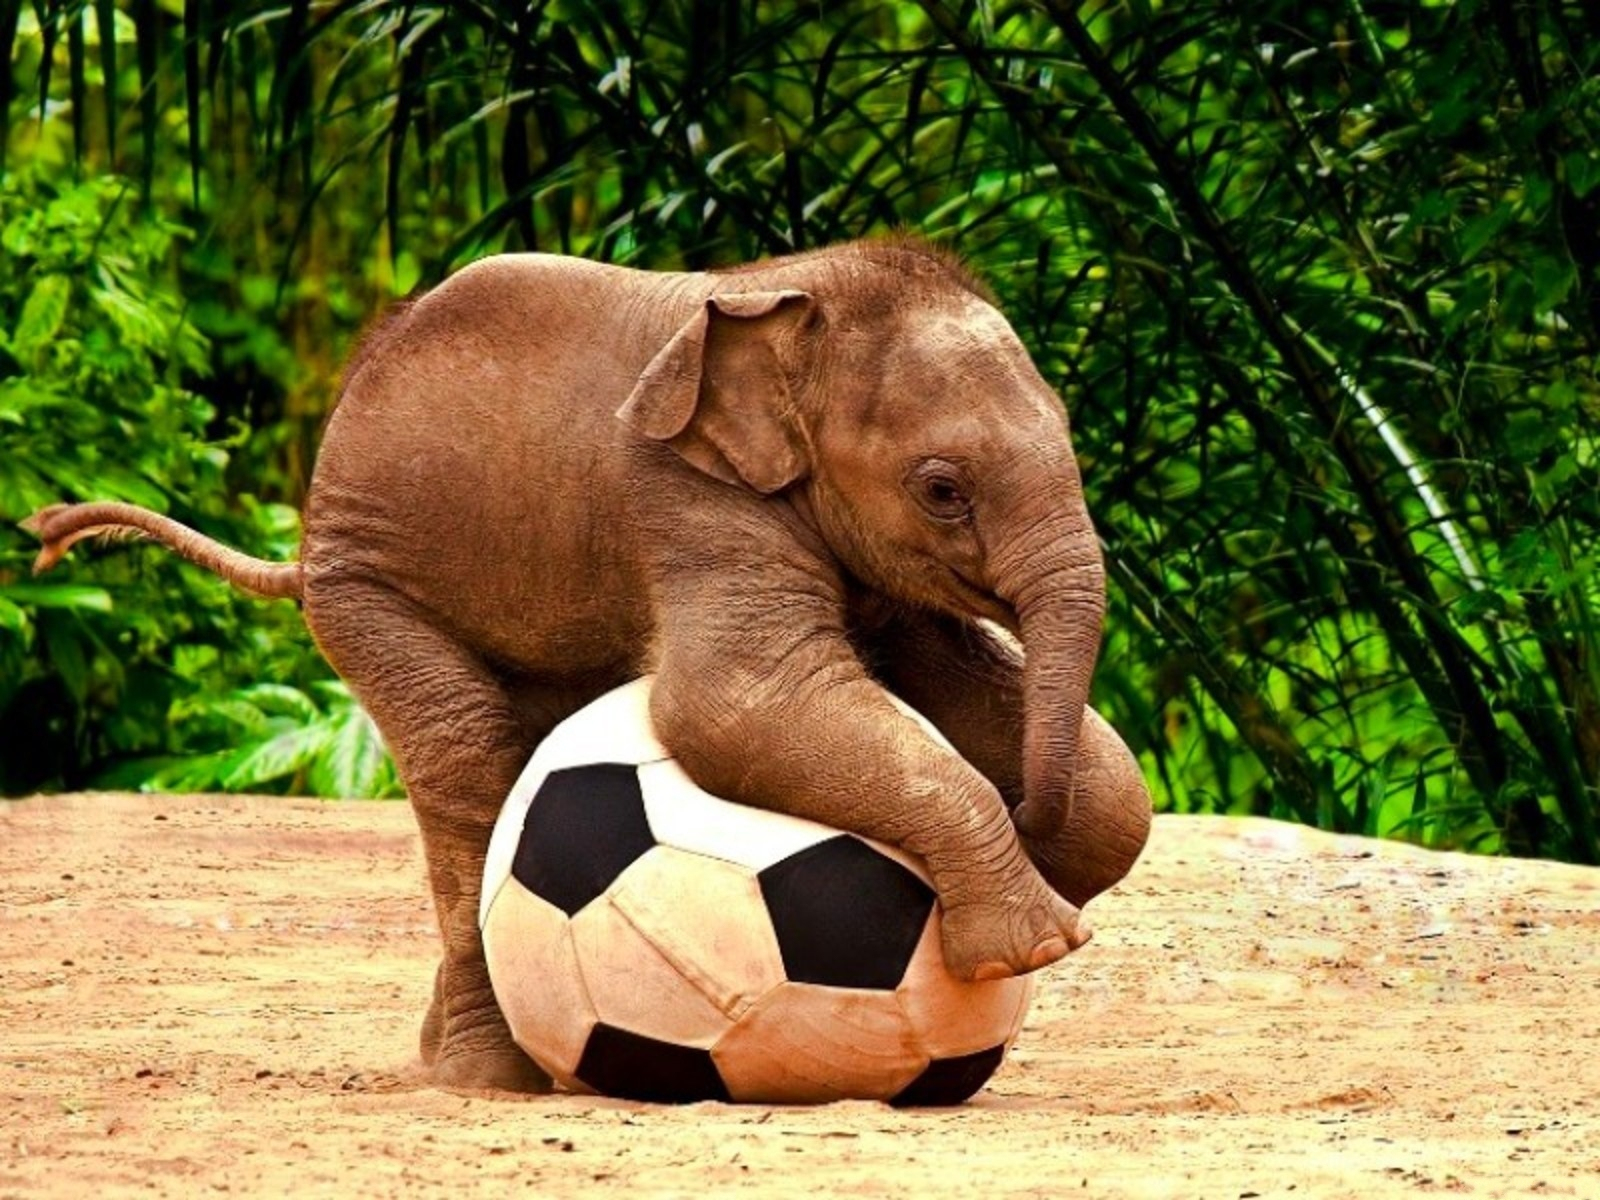 Baby elephant playing with a football hd wallpaper - Baby elephant wallpaper ...